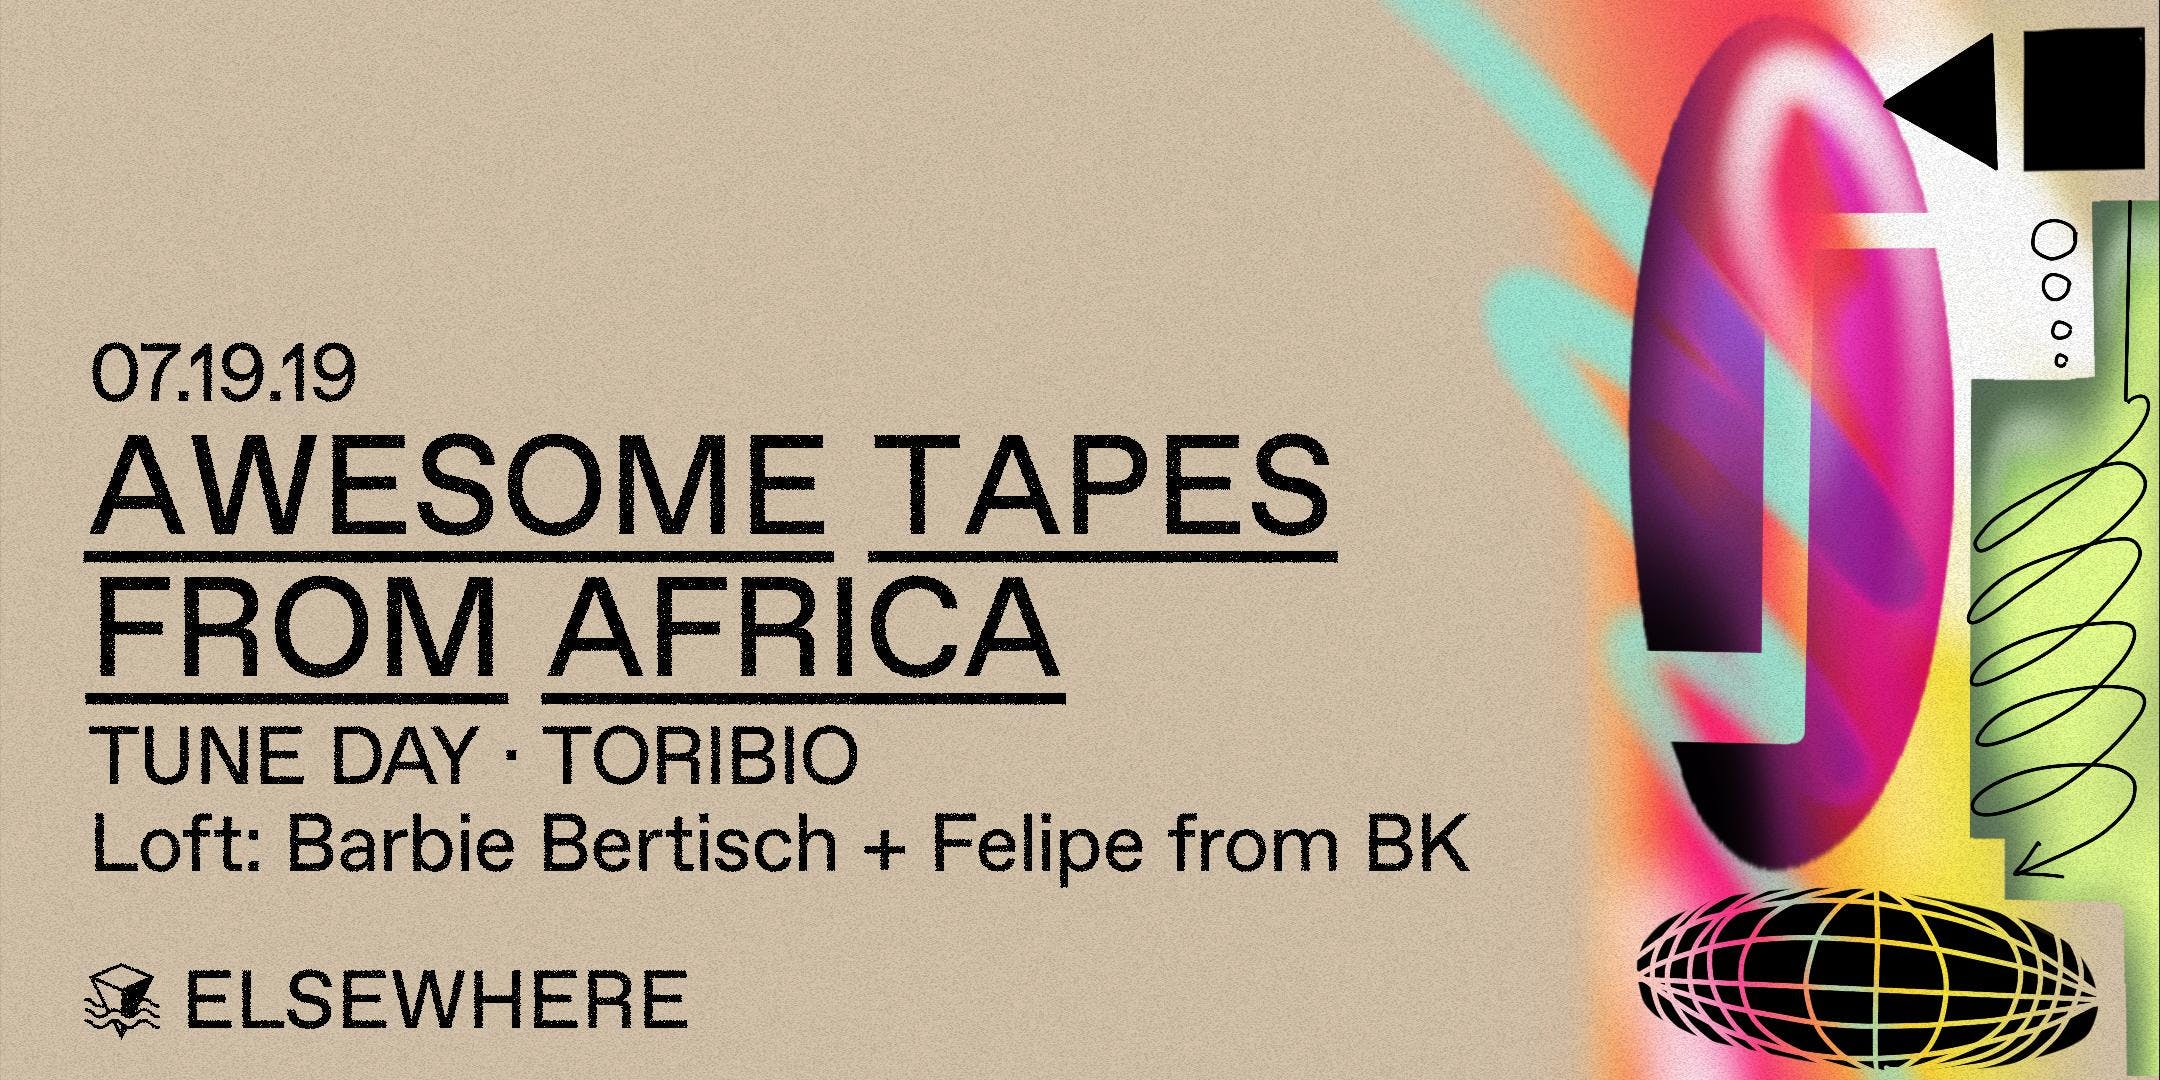 Awesome Tapes From Africa, TUNE DAY, Toribio, Barbie Bertisch & Felipe from BK